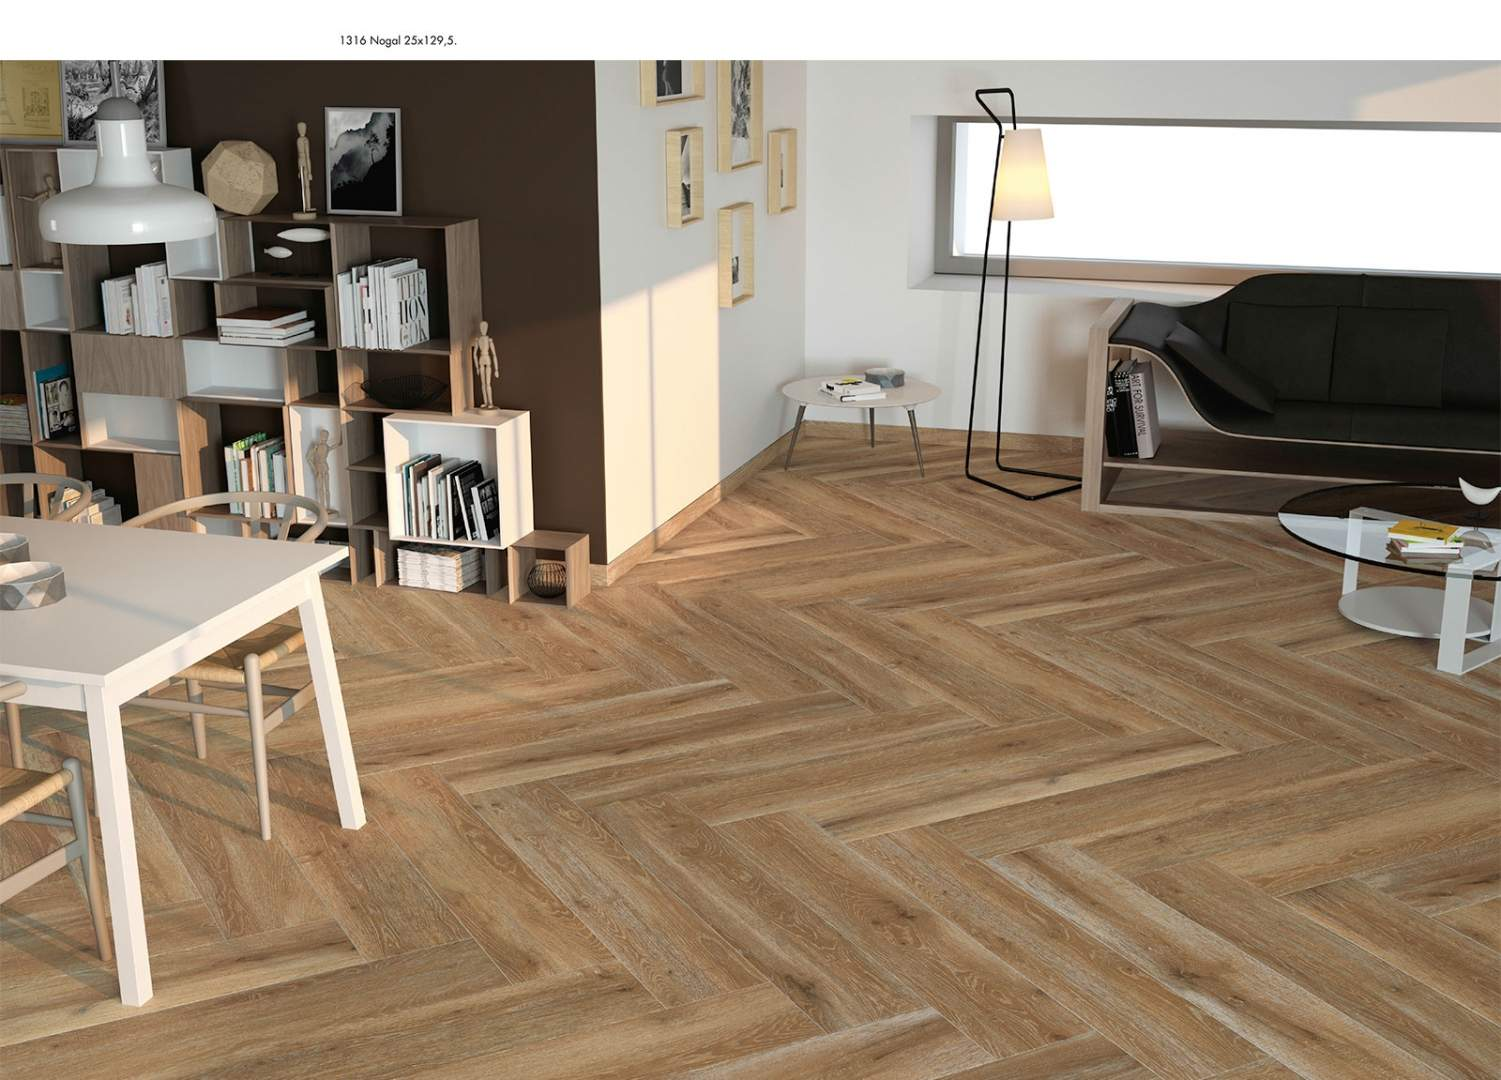 Herring Bone Oak Flooring at Italian Tile and Stone Dublin